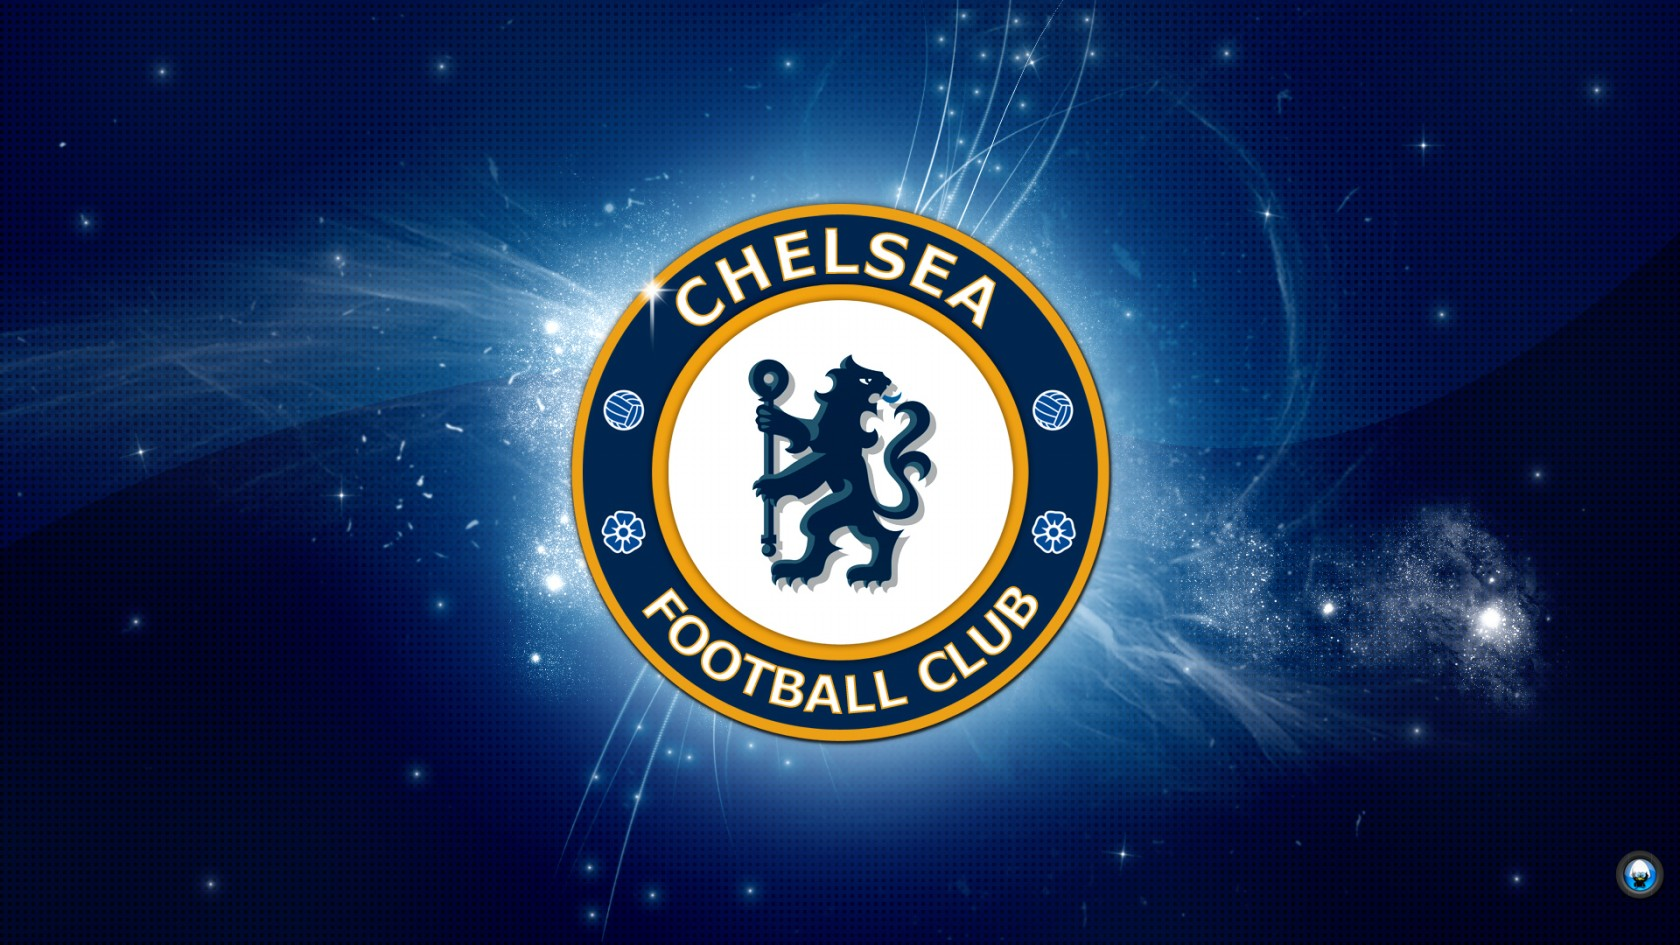 Chelsea Logo Wallpaper WallpaperSafari